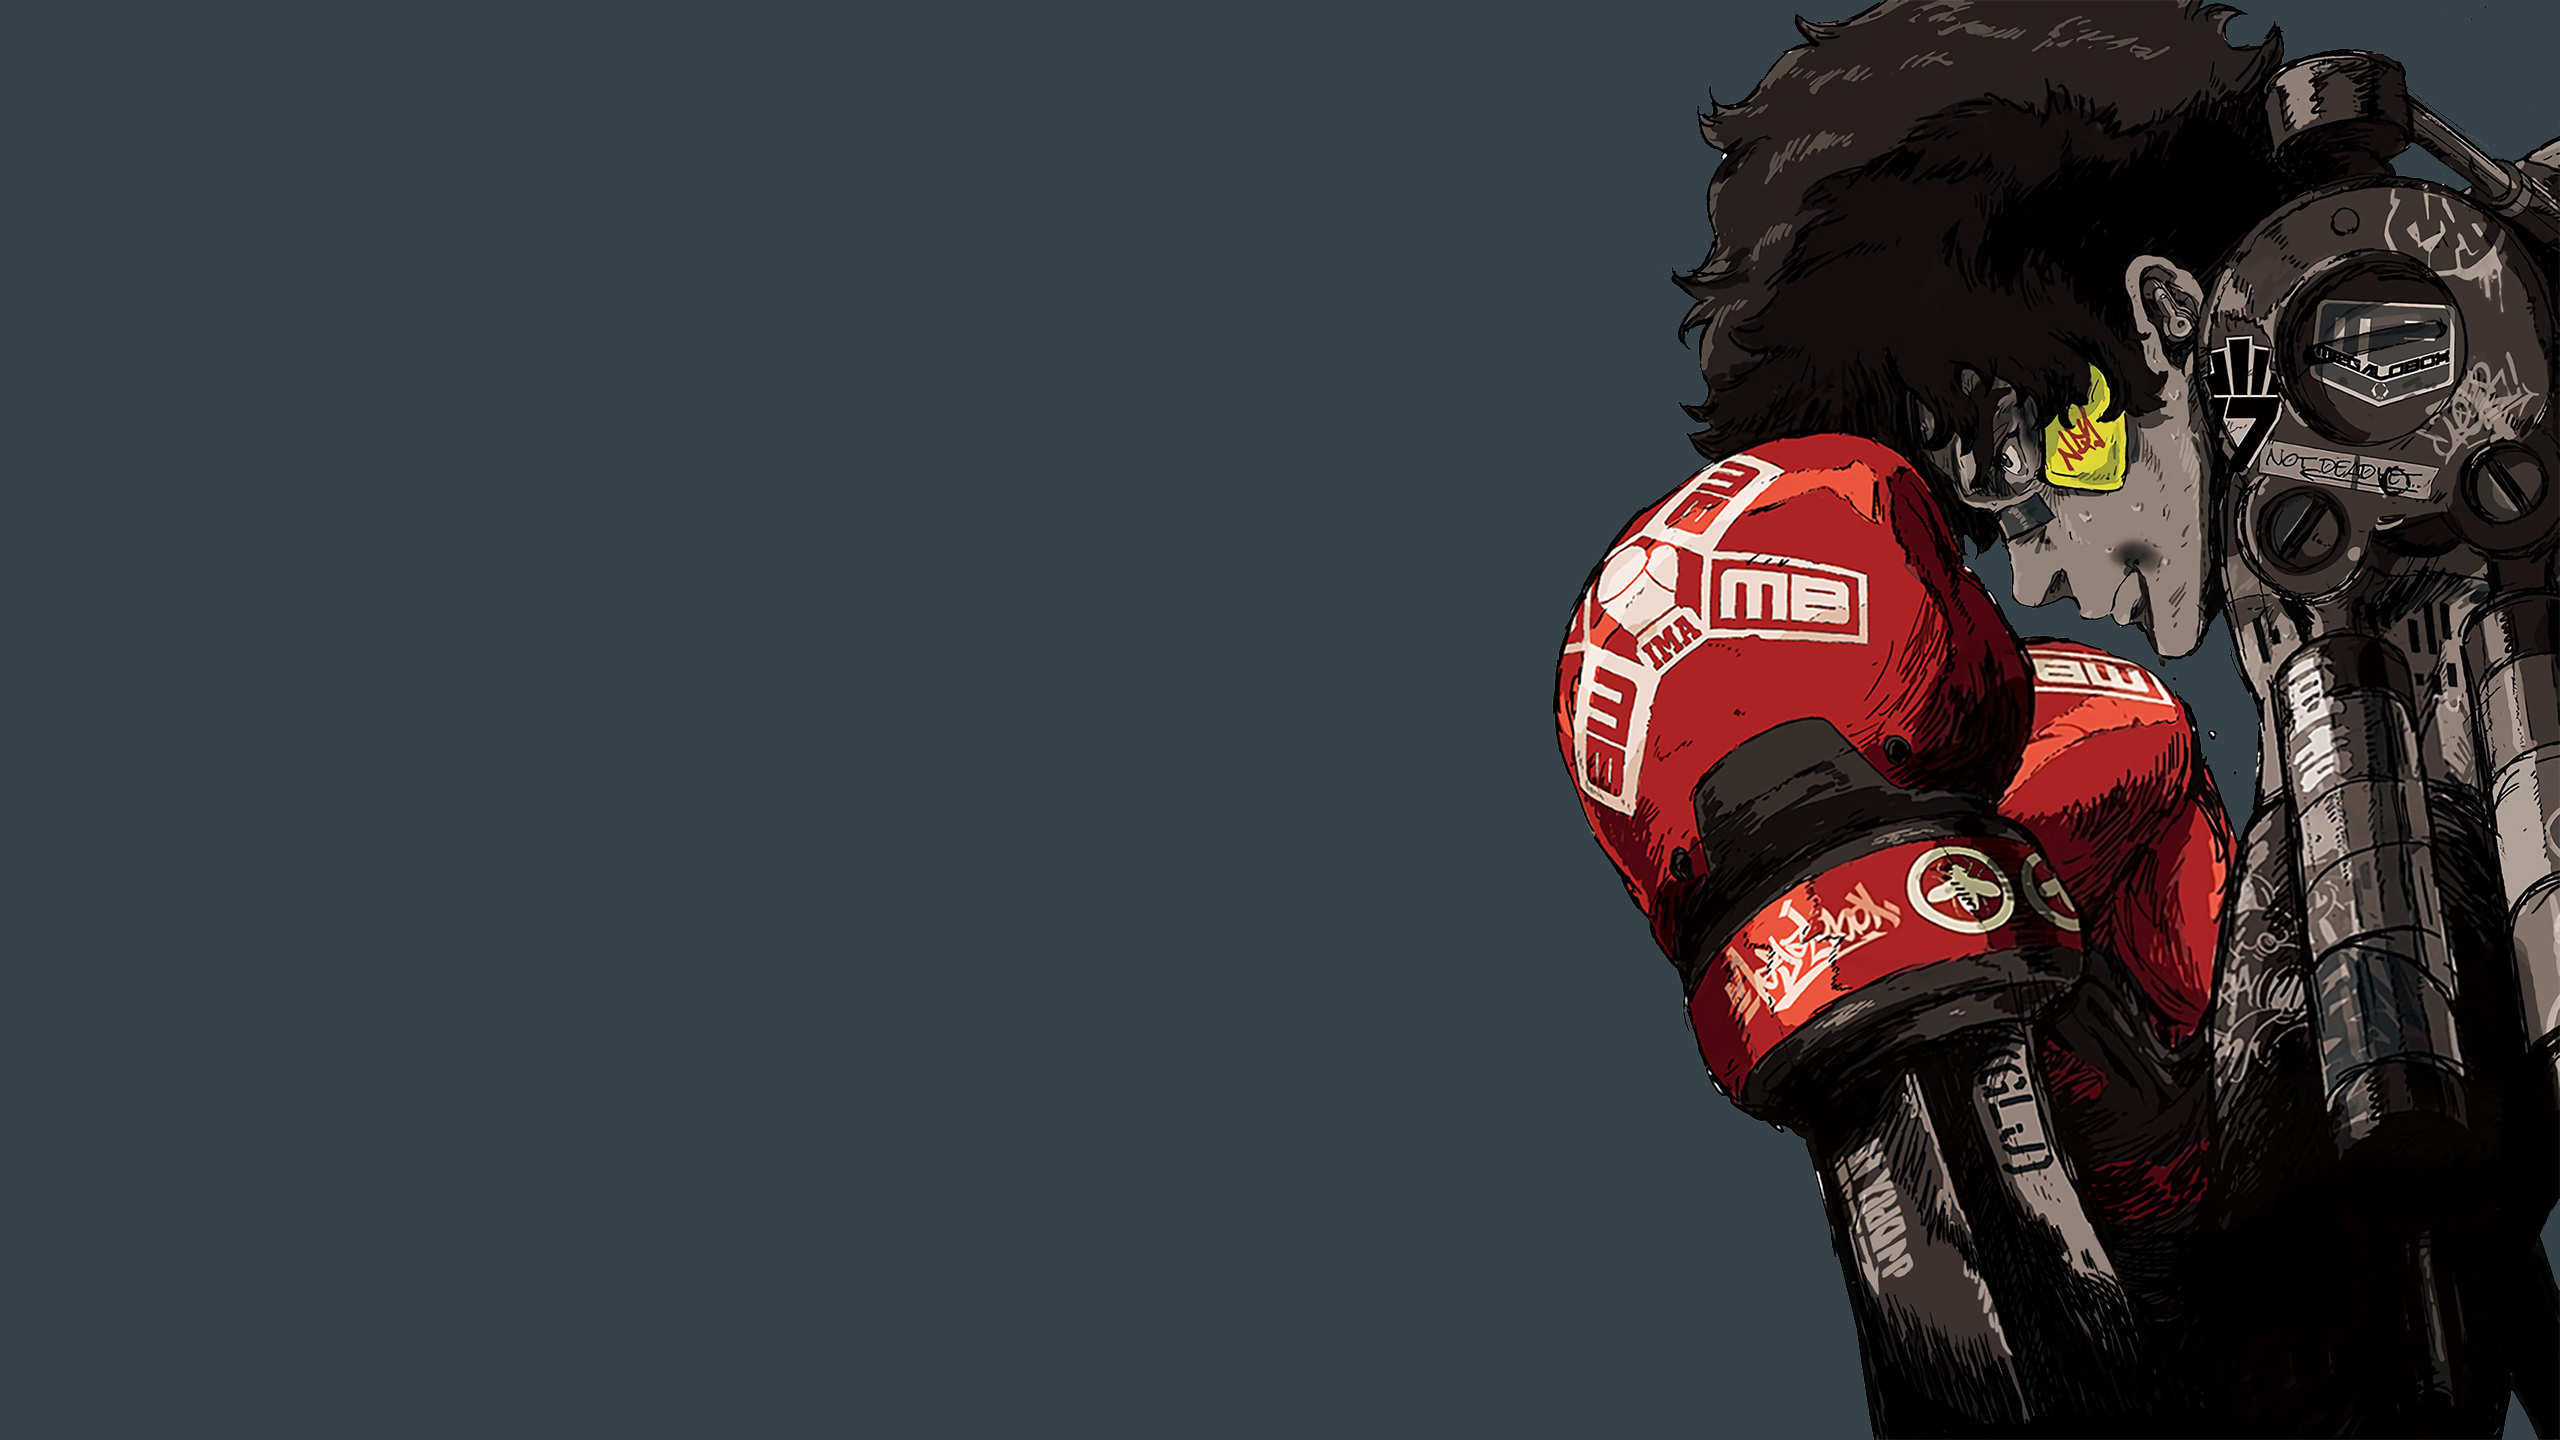 Megalo Box Textless Poster Wallpapers 2560 X 1440